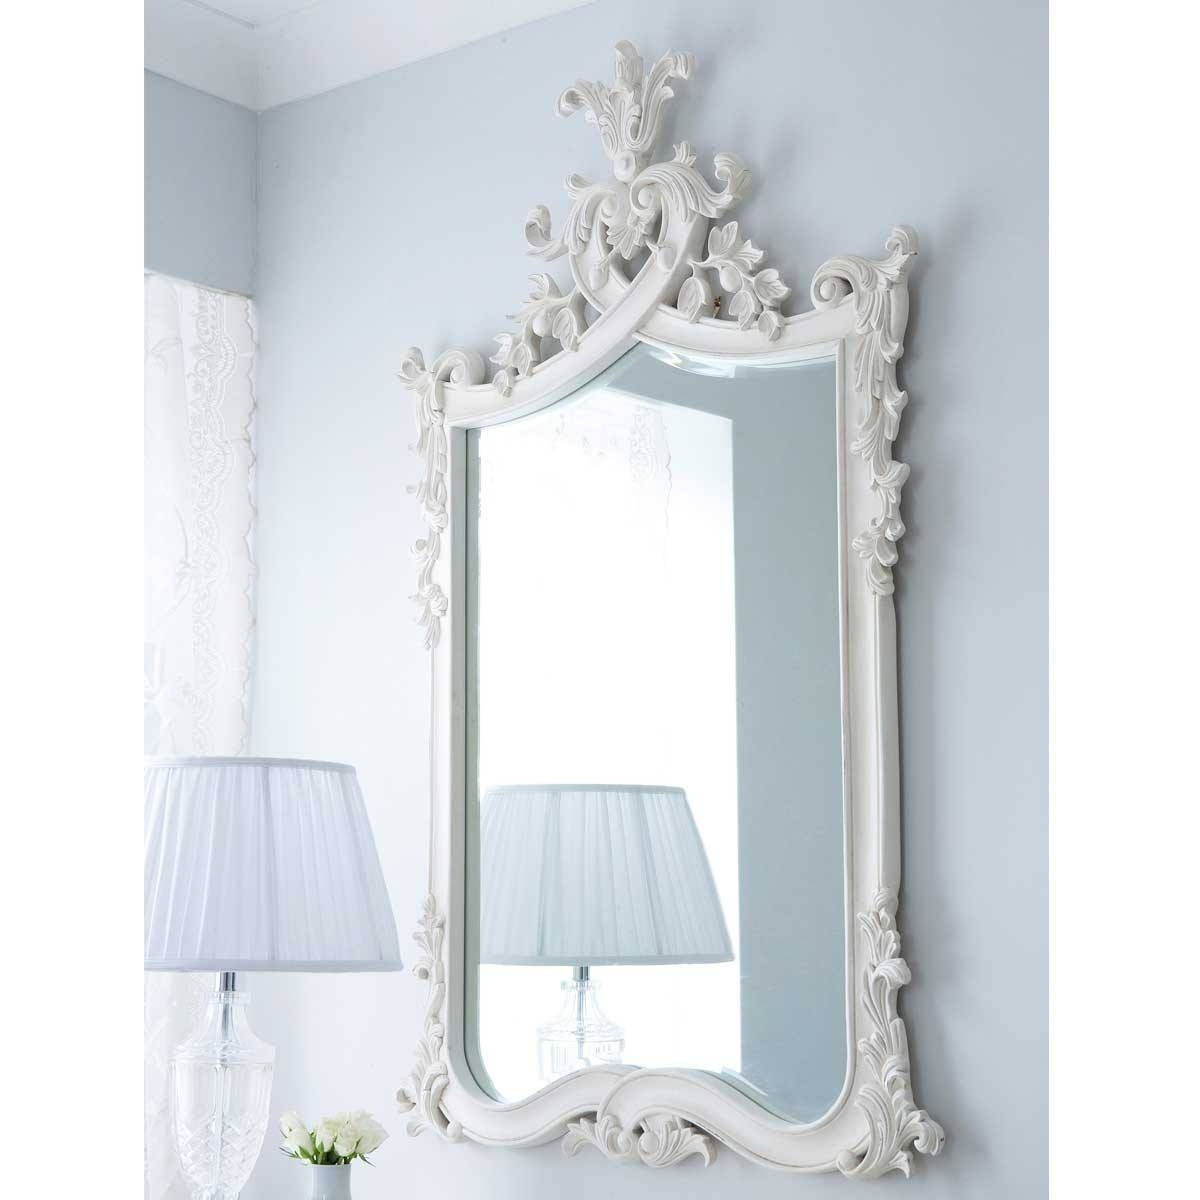 Provencal Heart Top White Mirror | Luxury Mirror intended for French Wall Mirrors (Image 17 of 25)